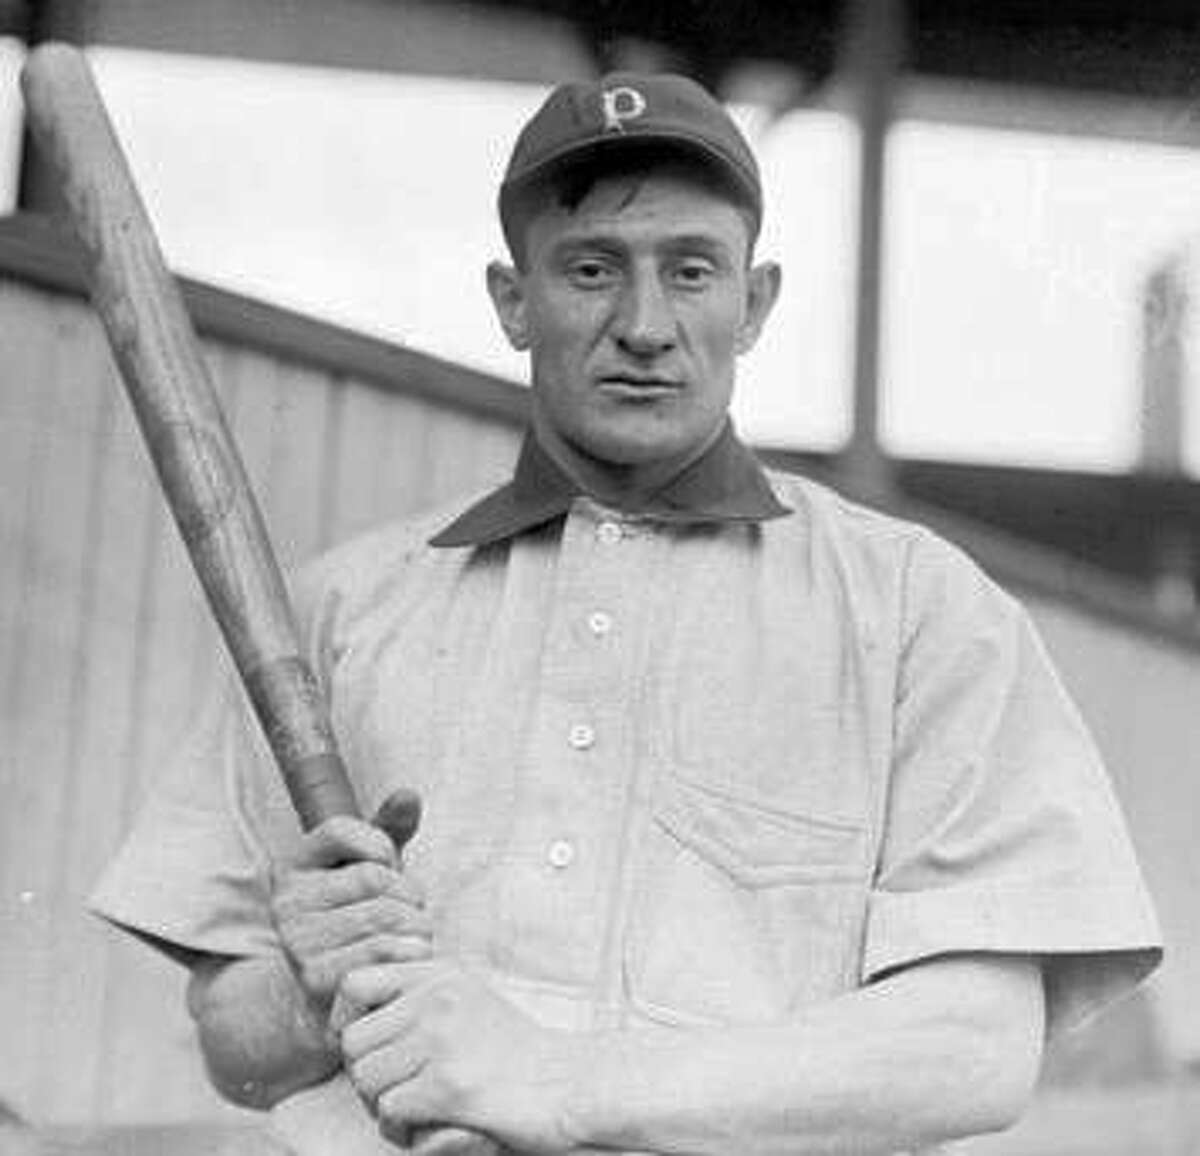 Honus Wagner's American Tobacco Company baseball card sold for $6.6 million at auction.